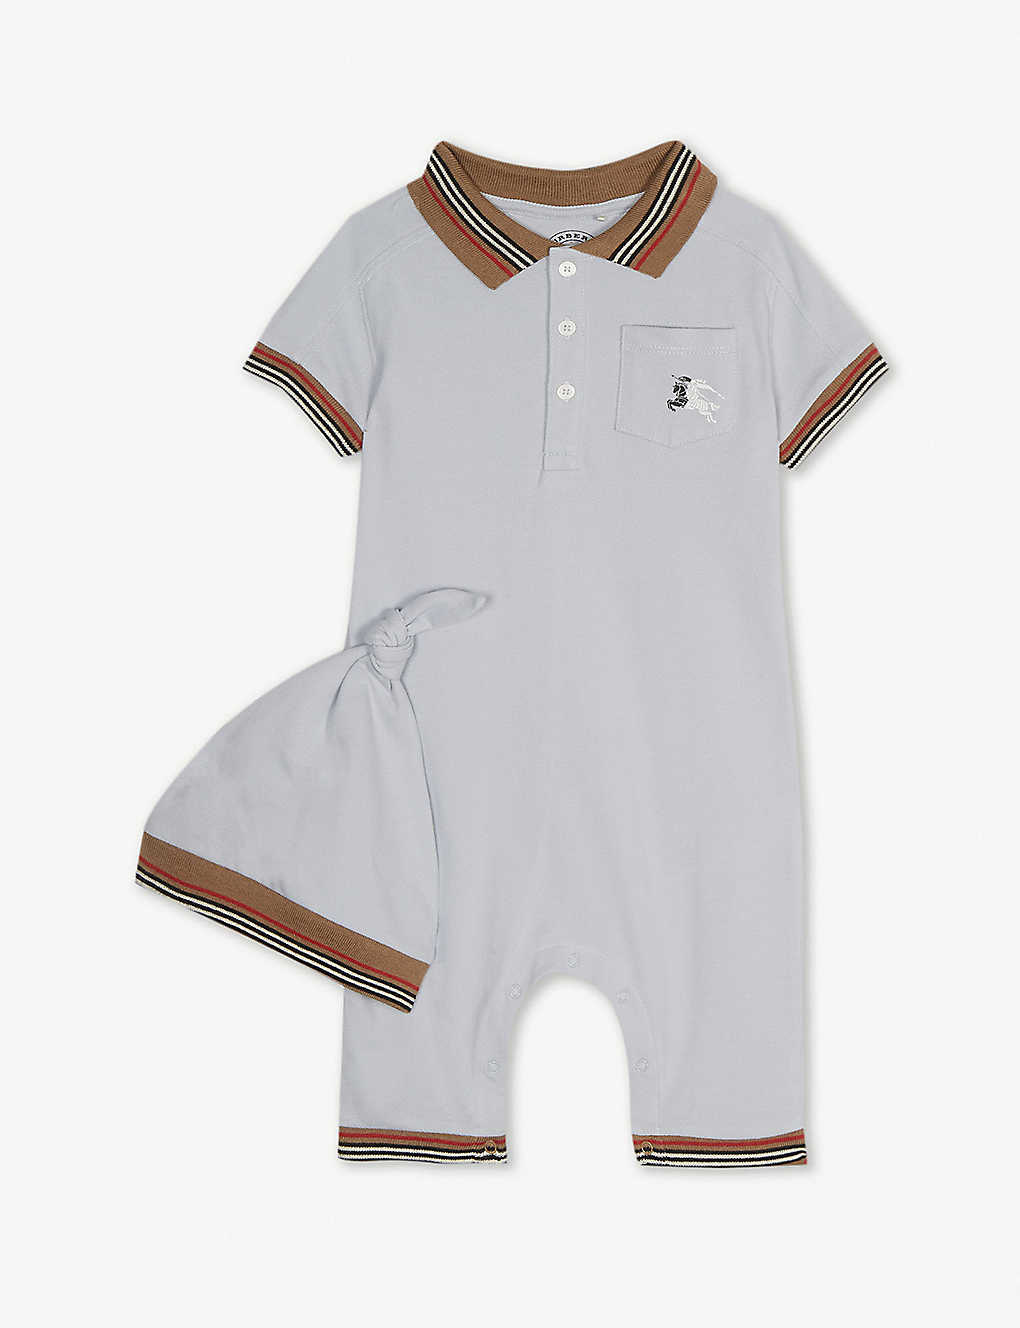 BURBERRY - Striped cotton babygrow and hat set 1-12 years ... 11ad0185e499